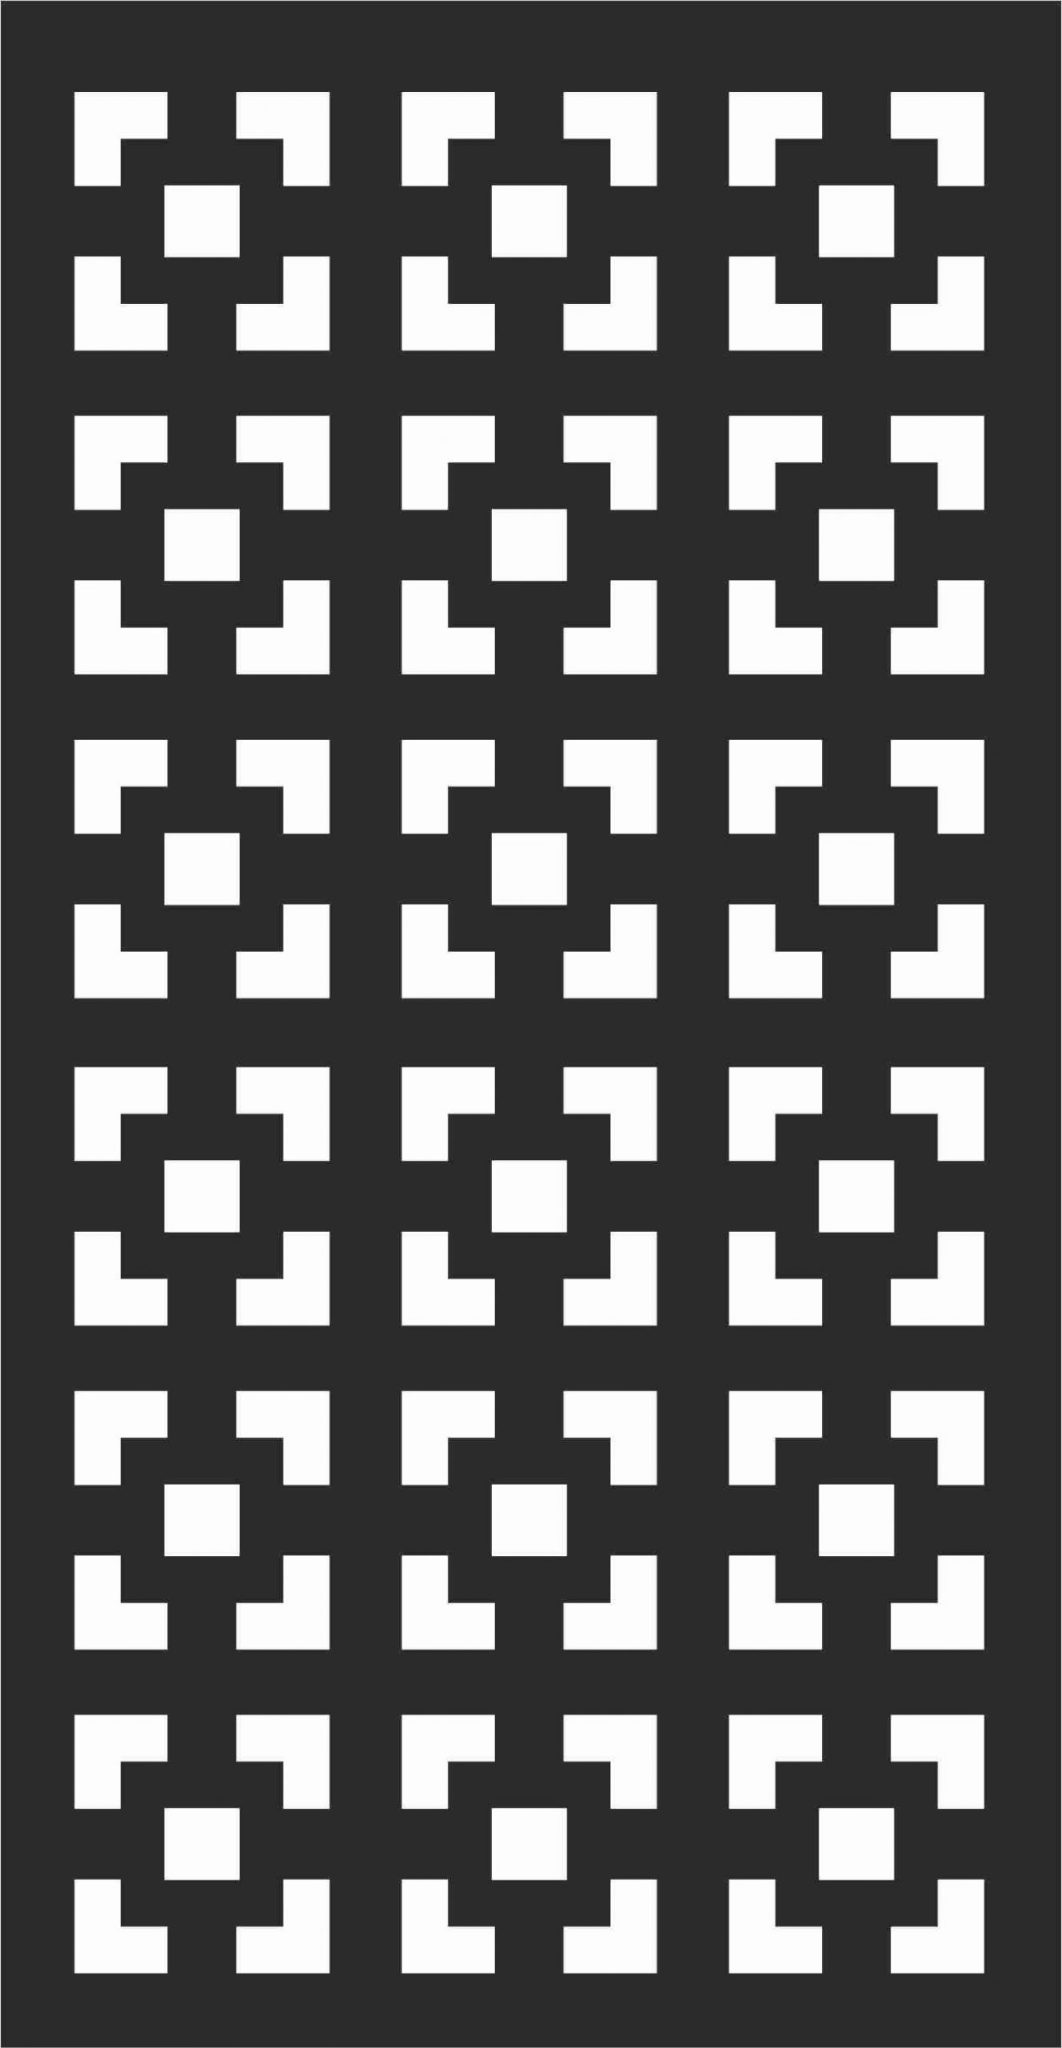 Decorative Screen Patterns For Laser Cutting 99 Free DXF File